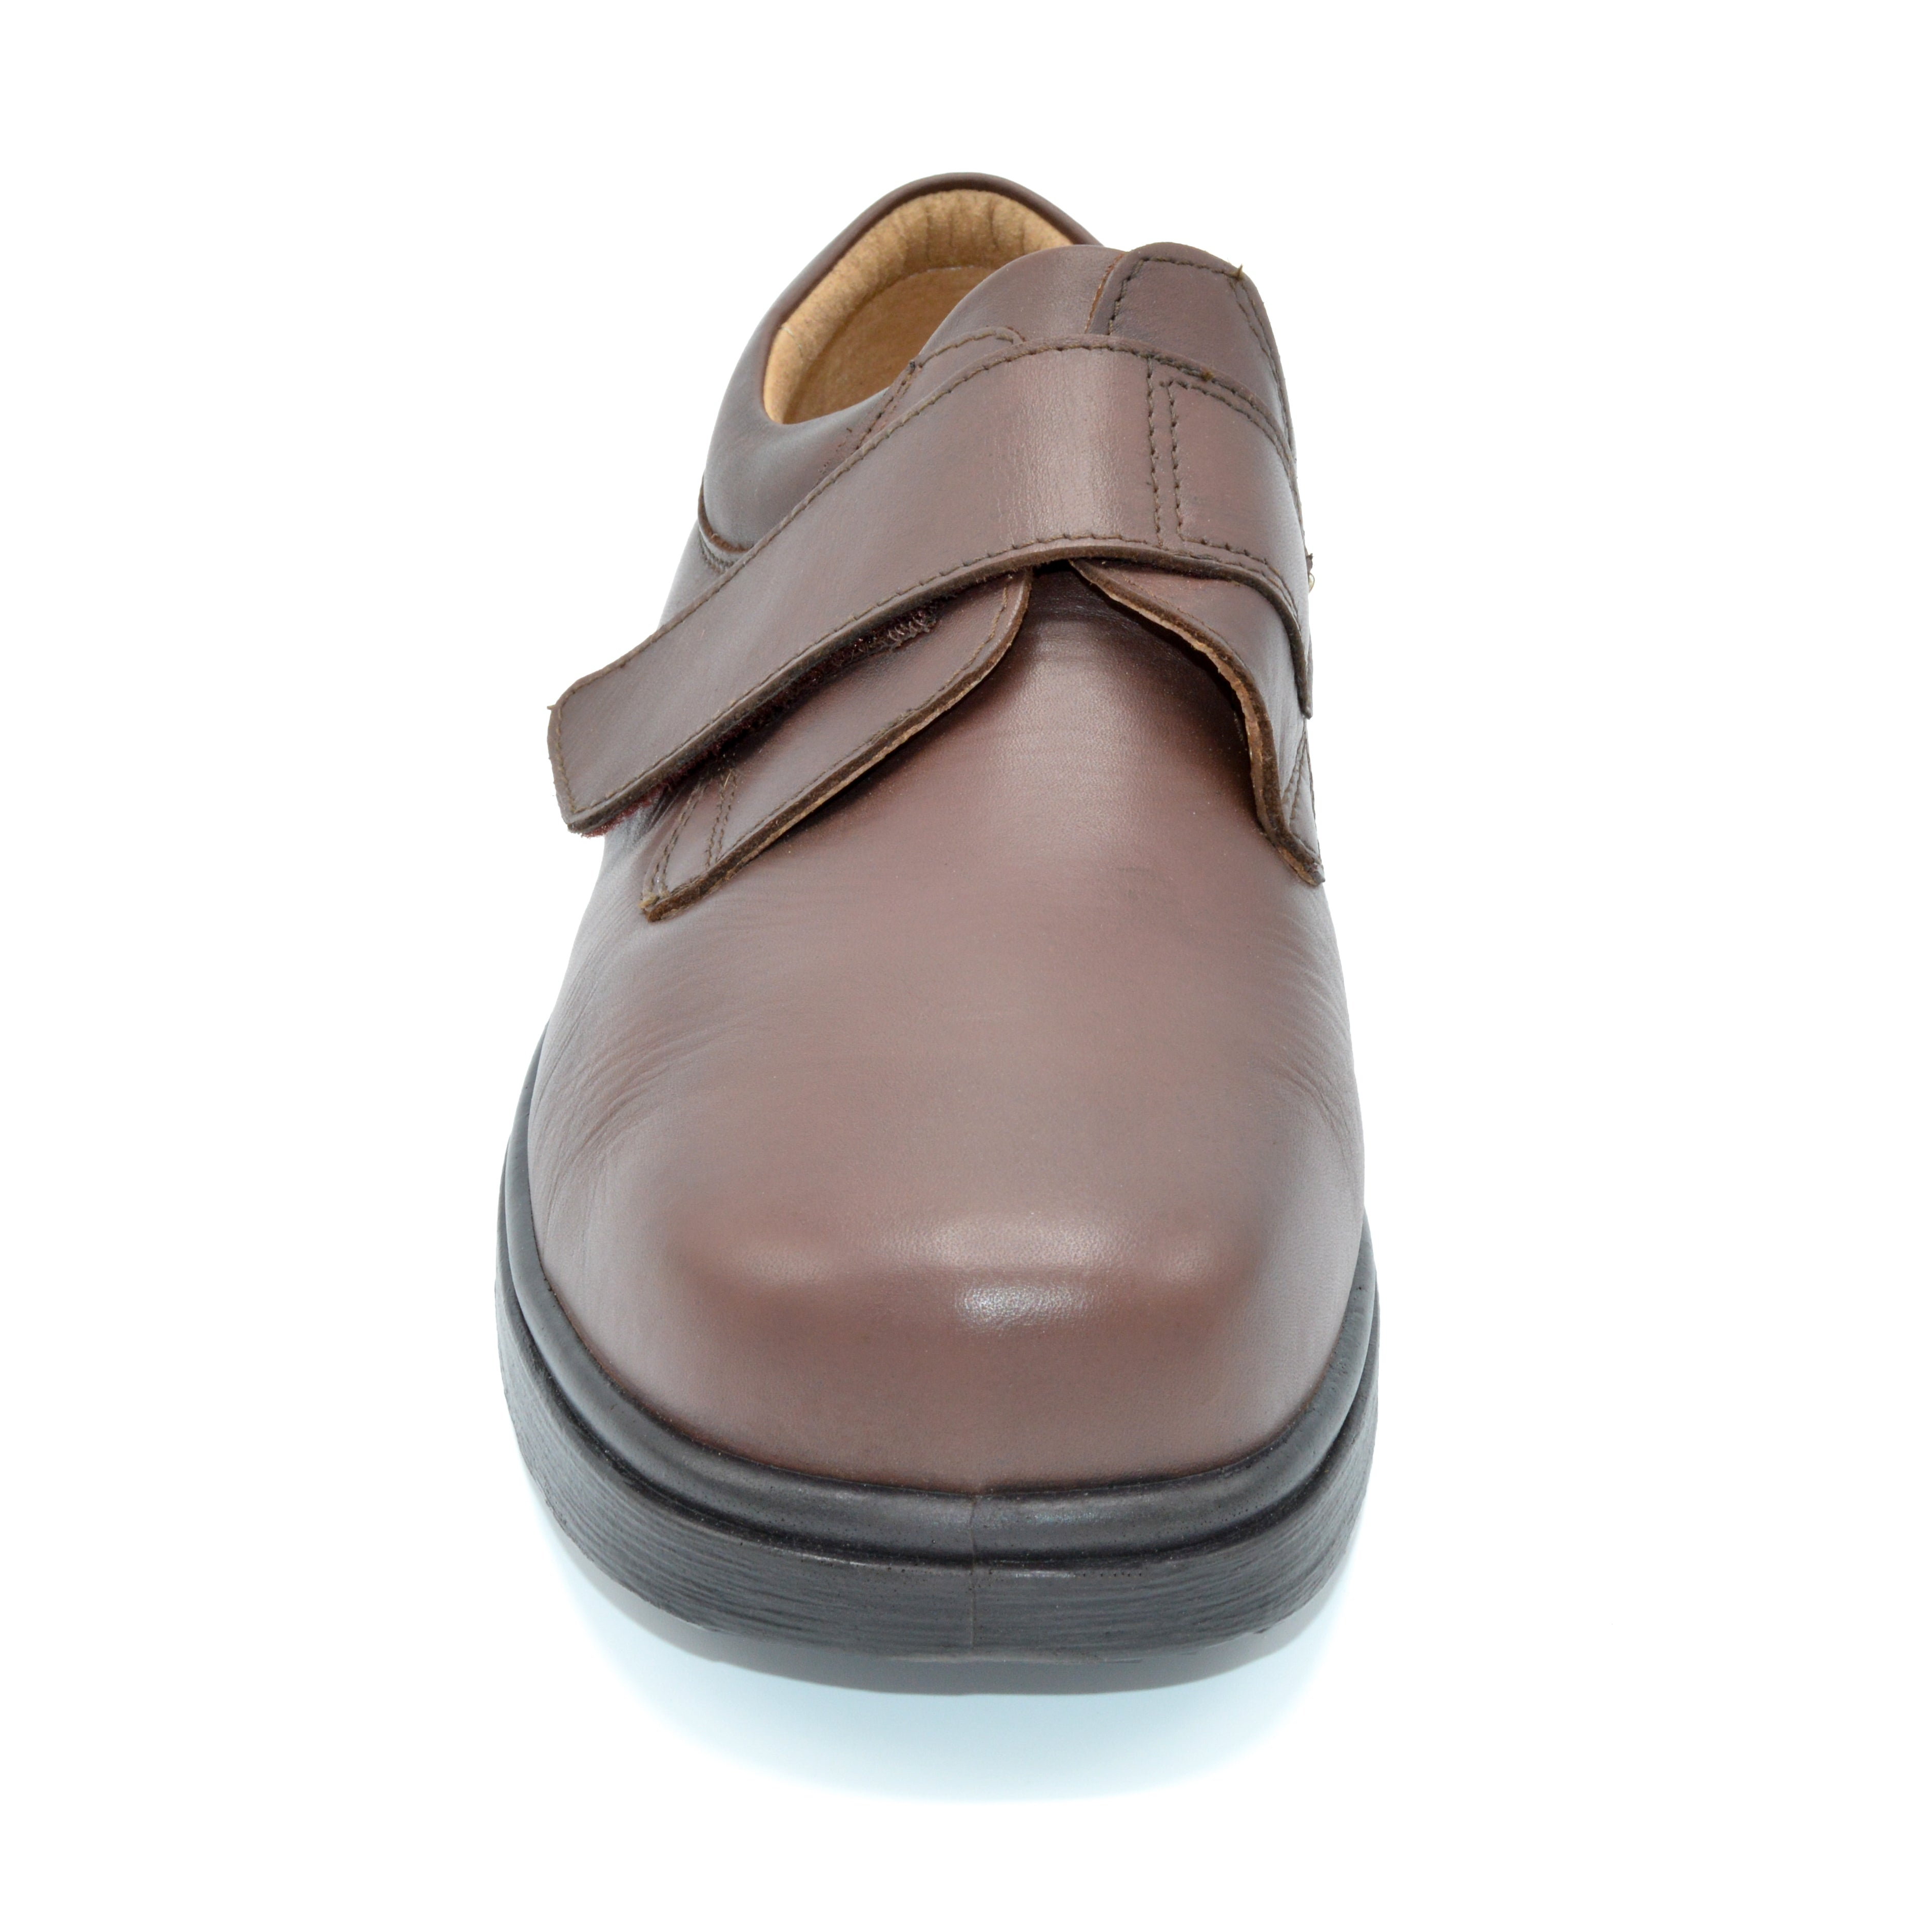 Light Velcro Wide Fitting Shoe For Bunions